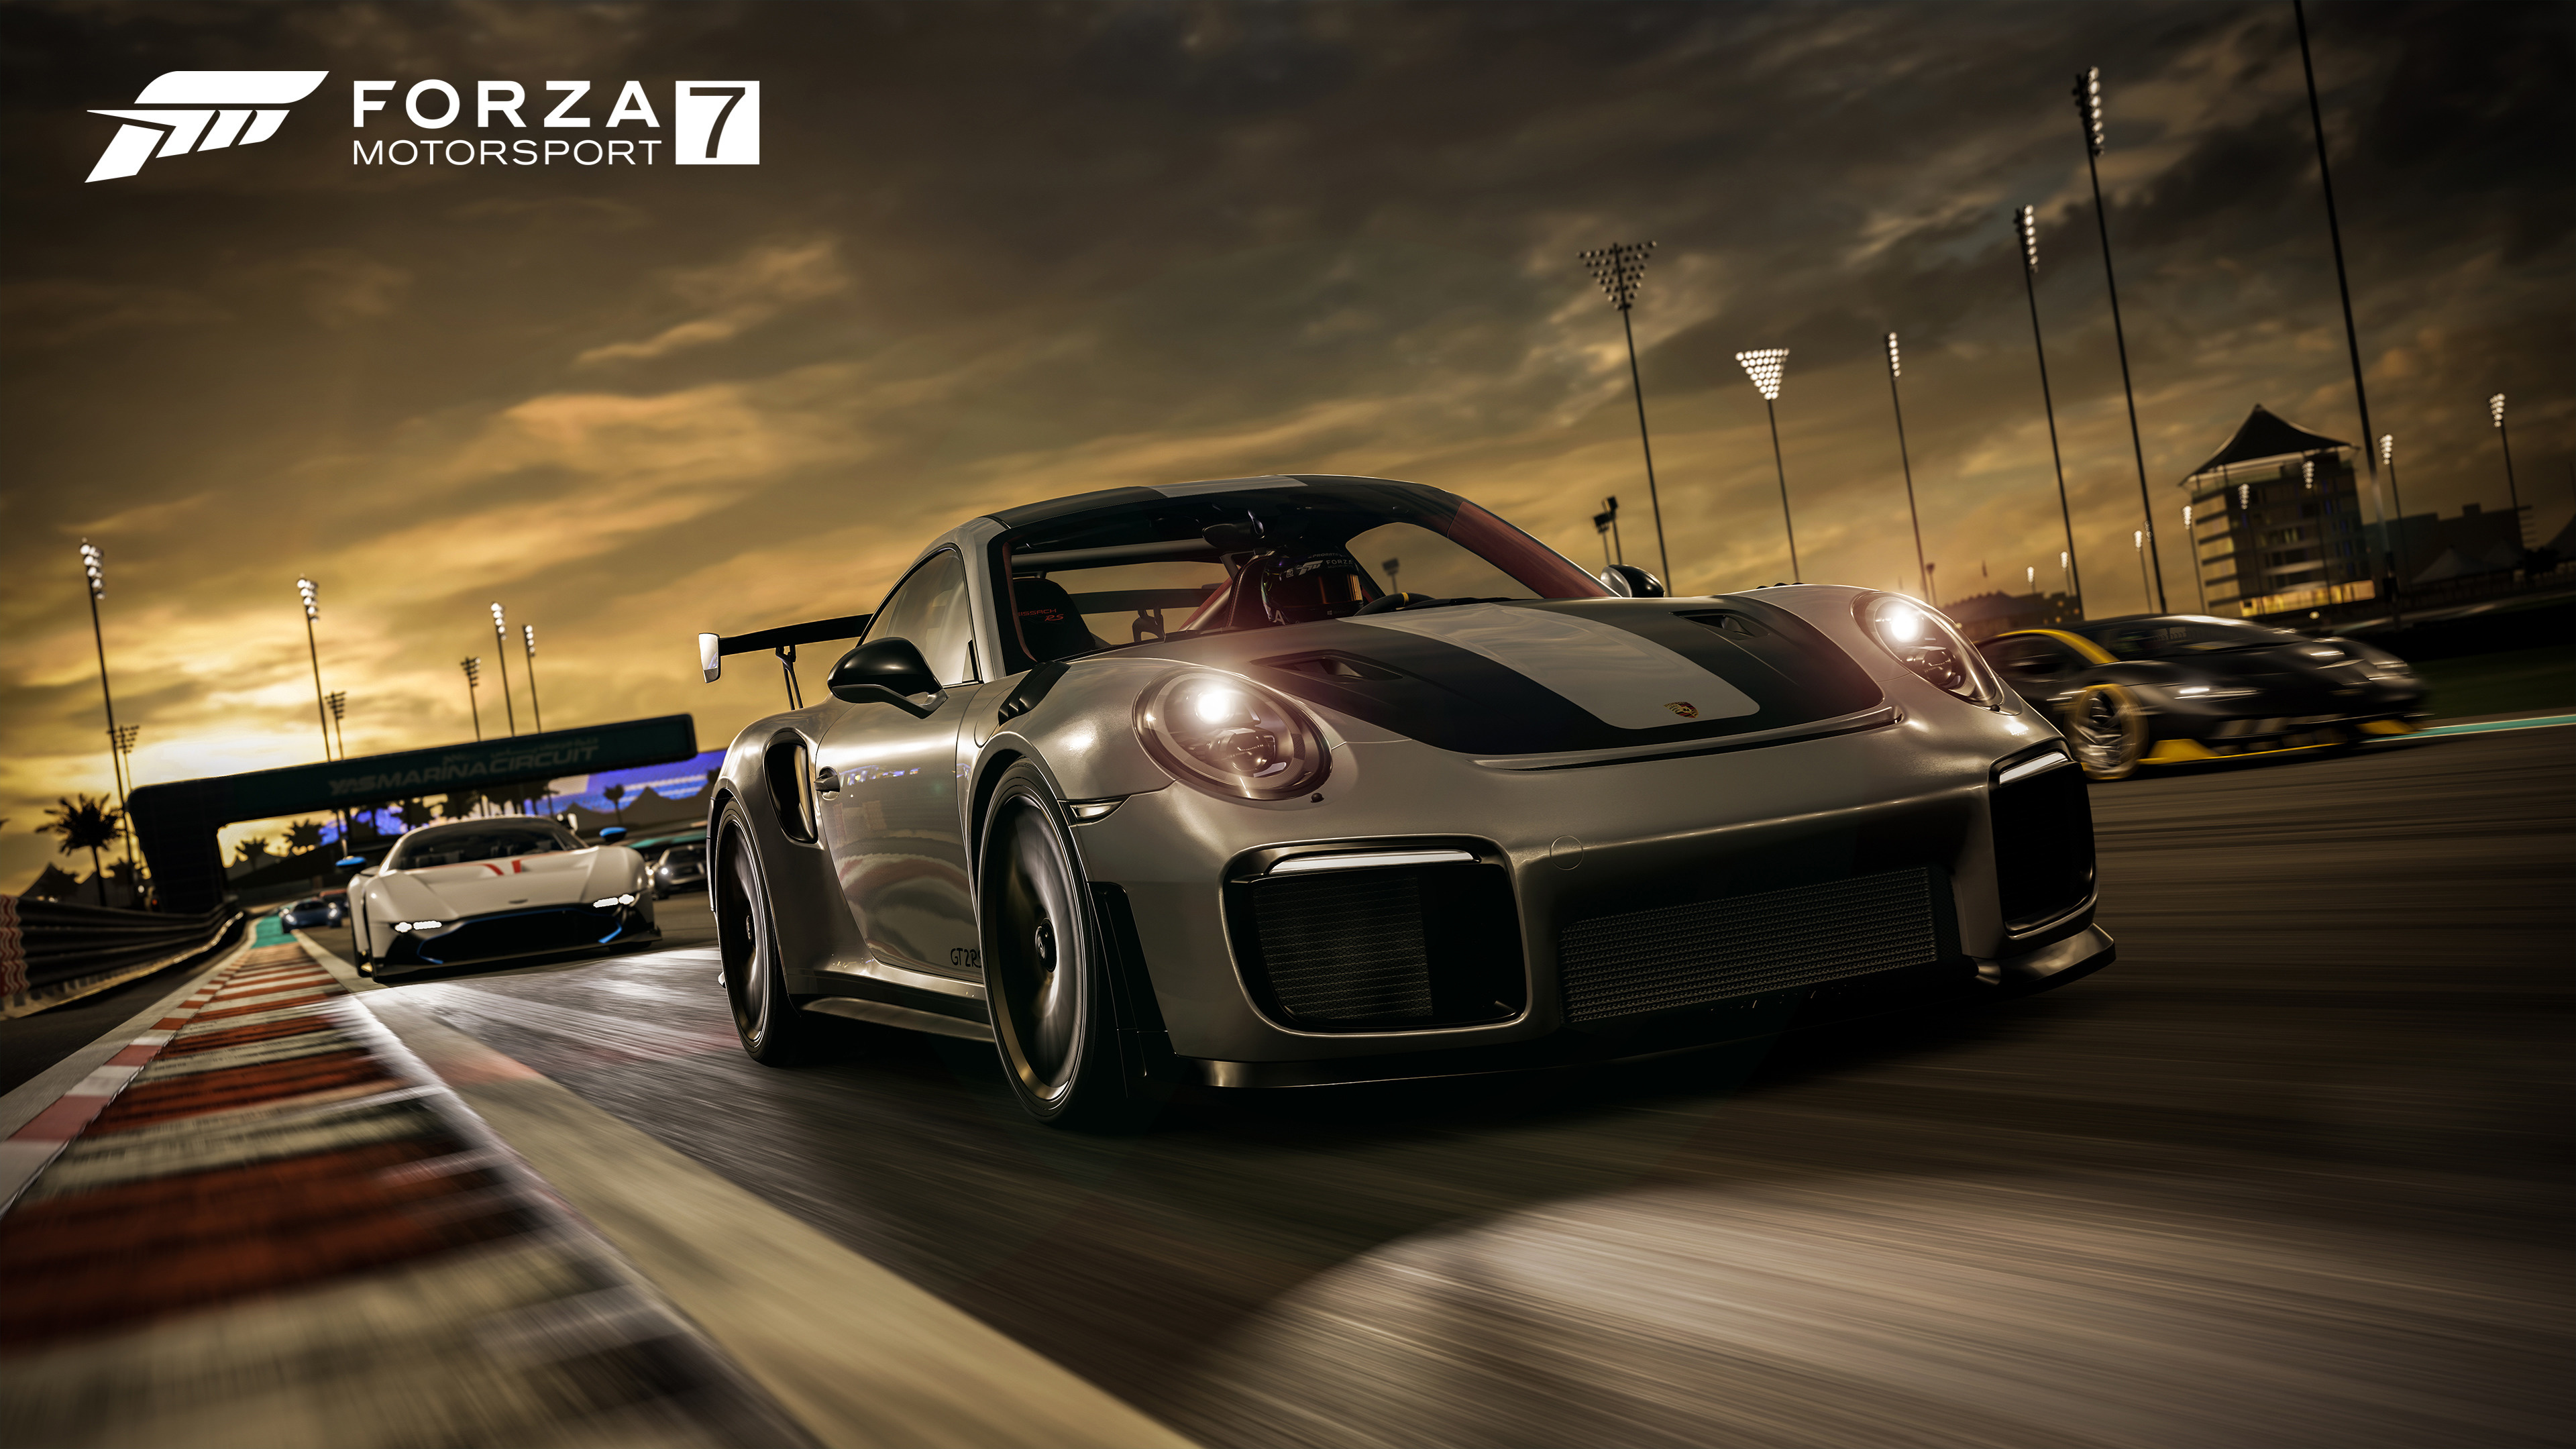 forza motorsport 7 demo xbox one vs xbox one x vs pc. Black Bedroom Furniture Sets. Home Design Ideas